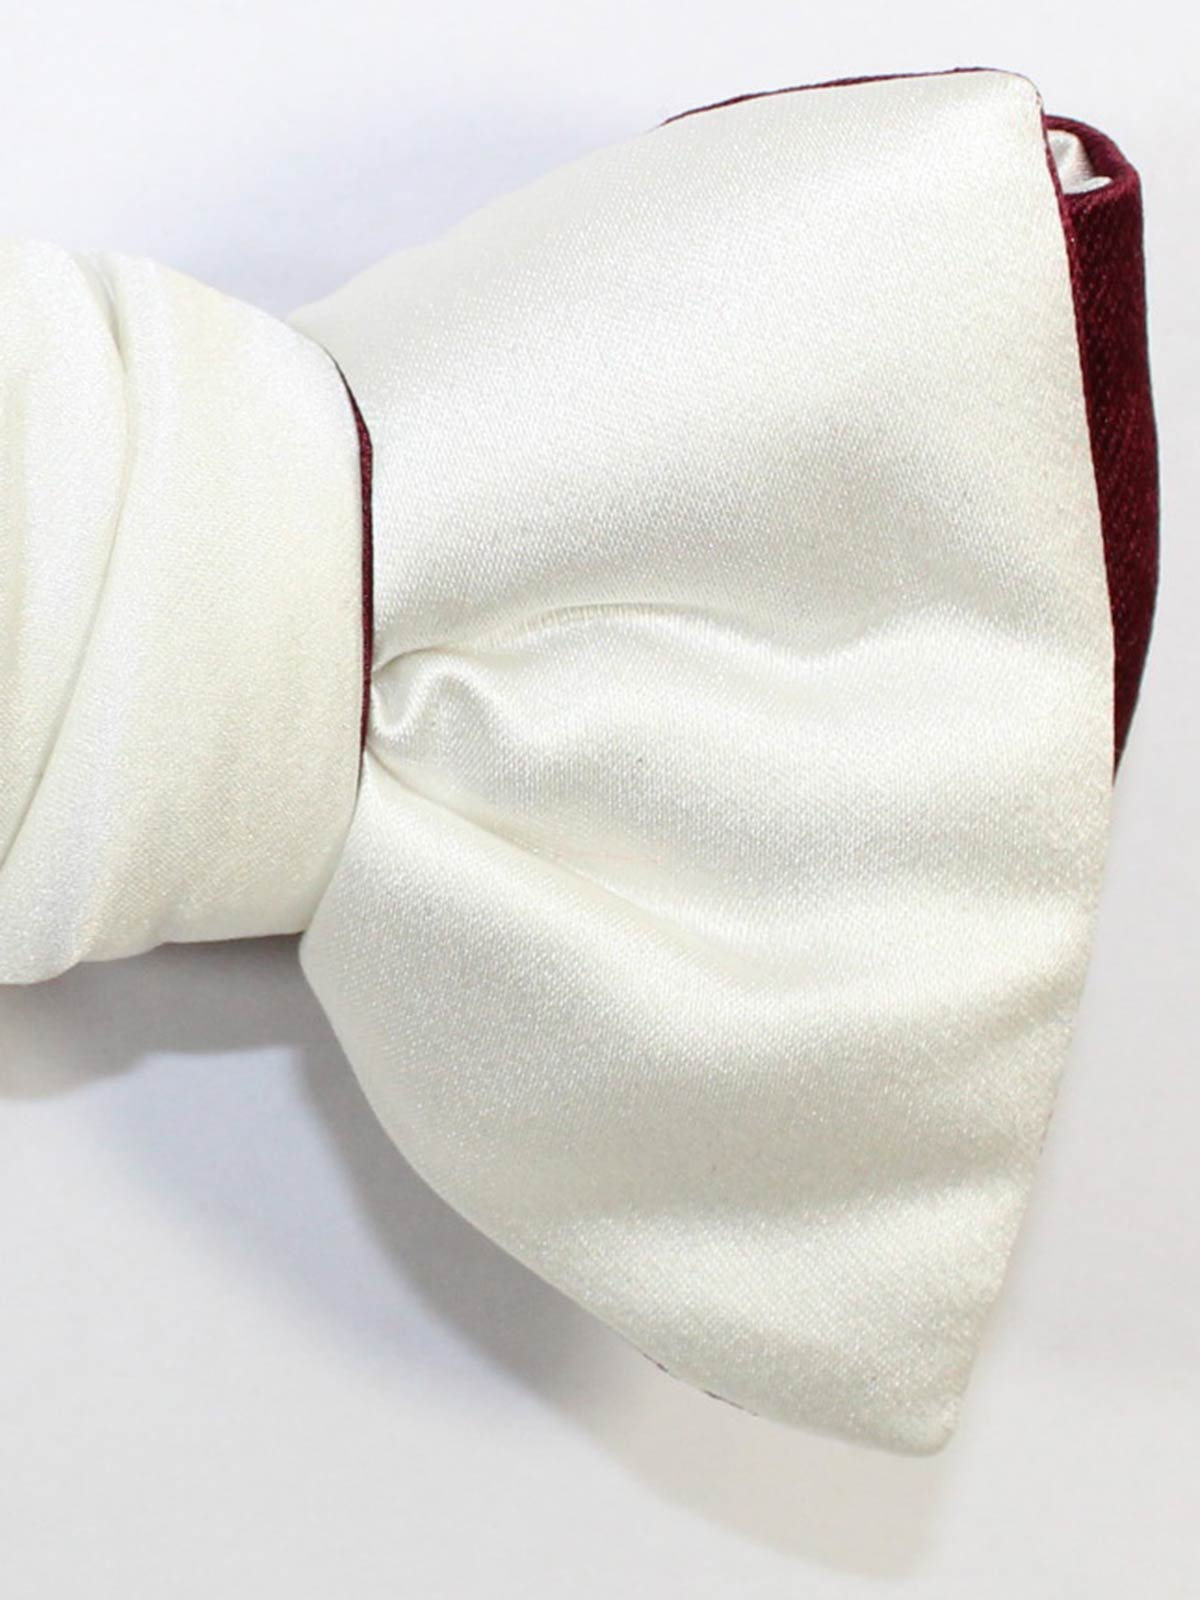 Le Noeud Papillon Bow Tie White Maroon Solid Large Butterfly - Self Tie